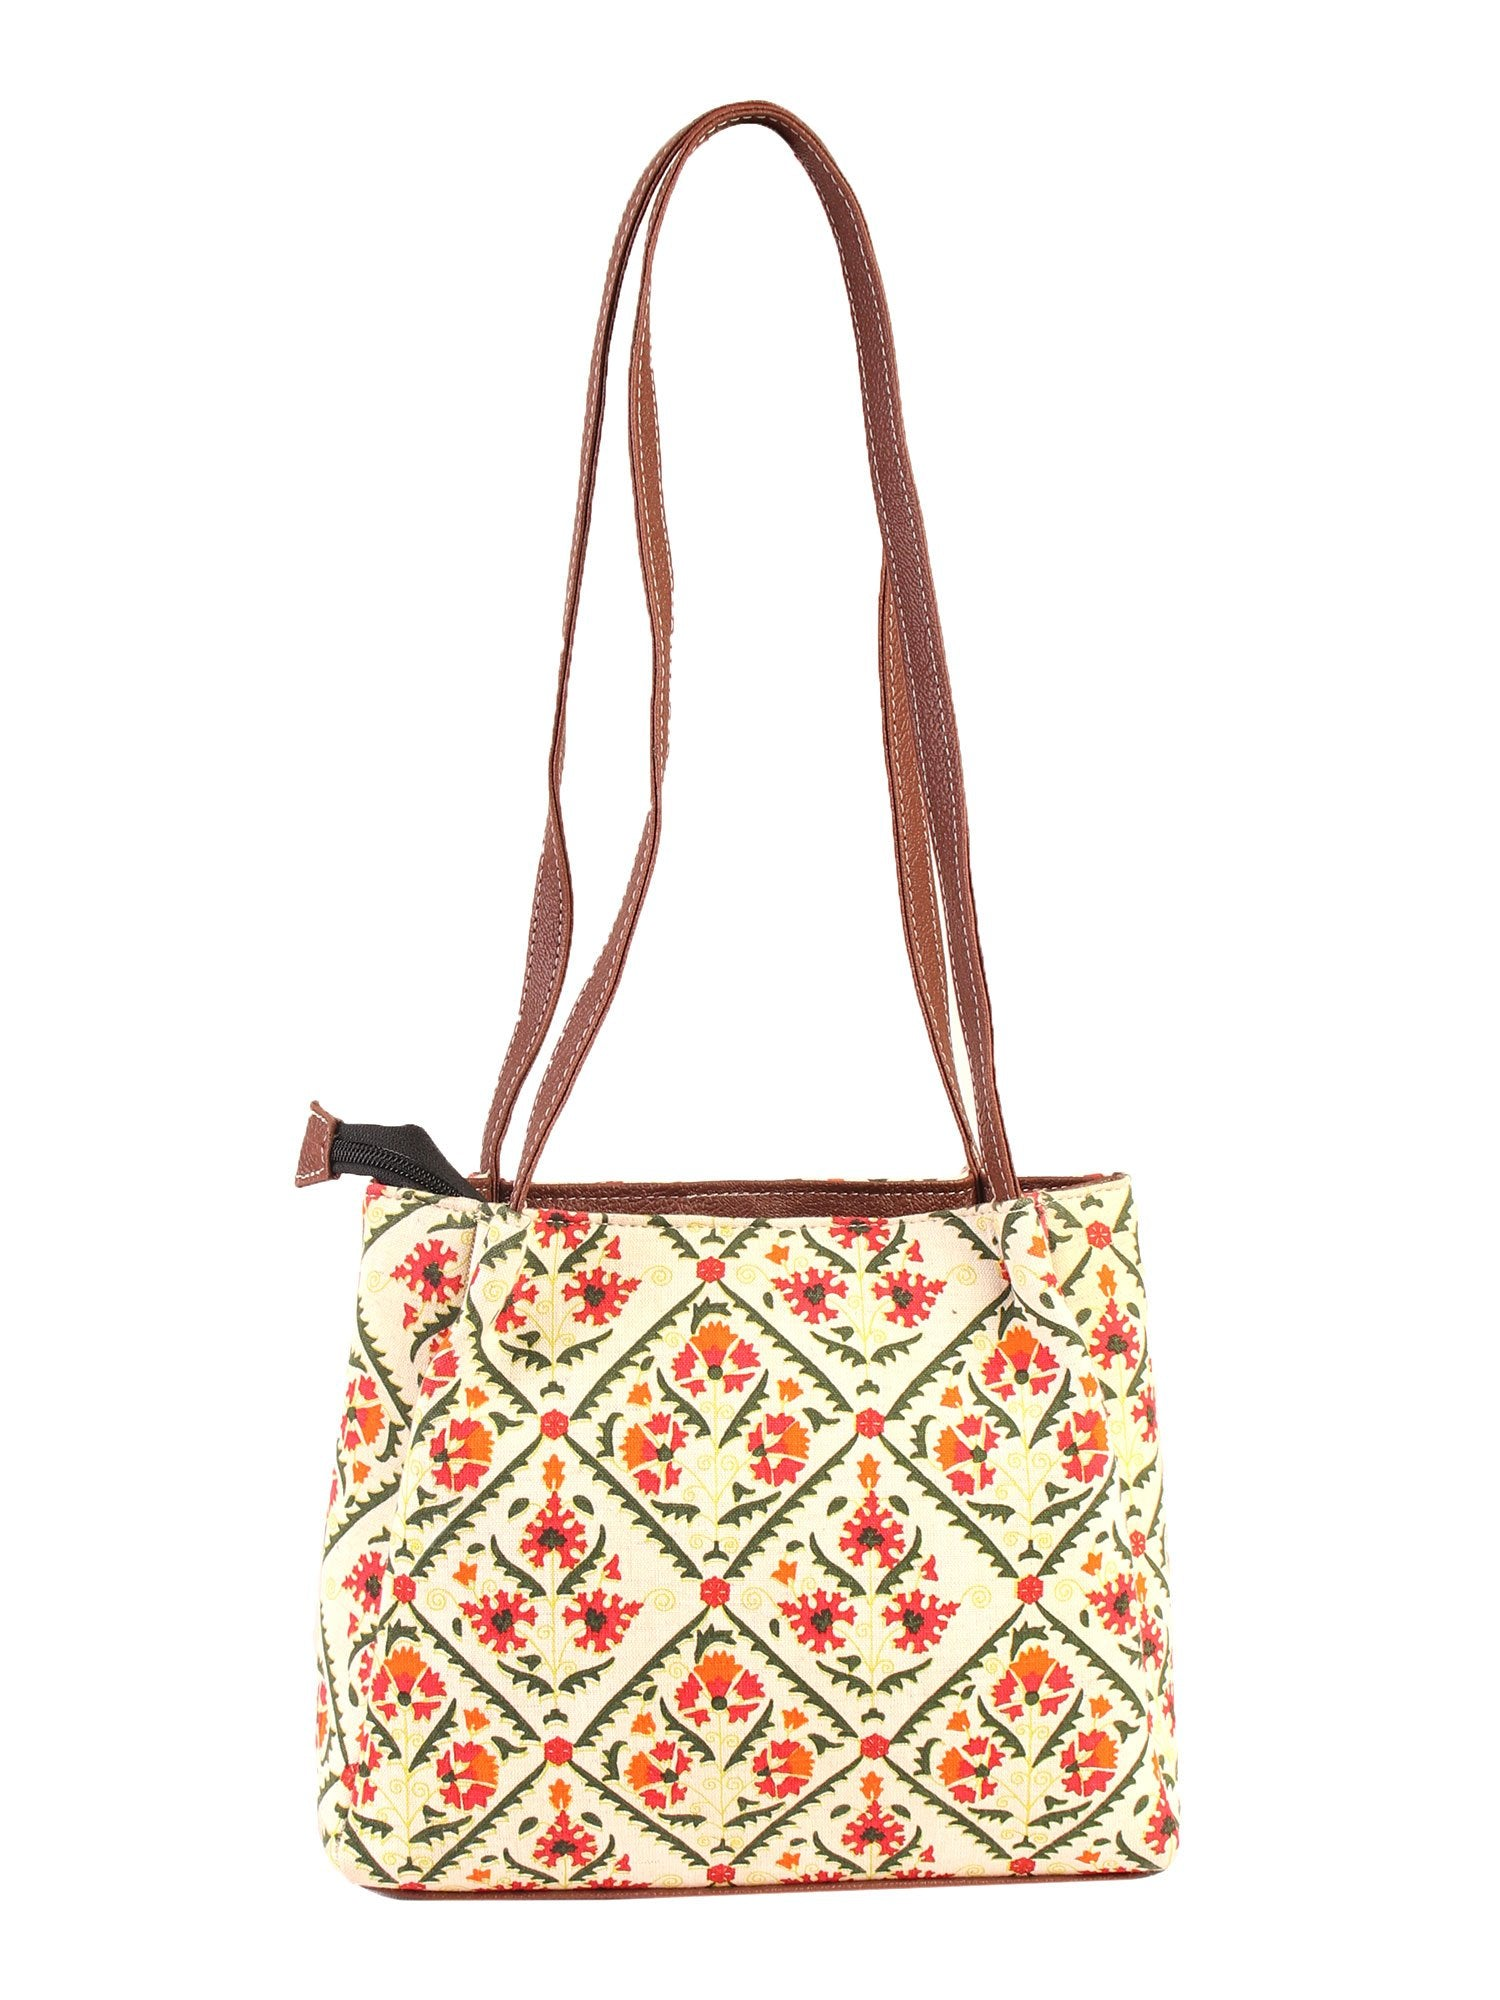 Beauteous Floral Handbag